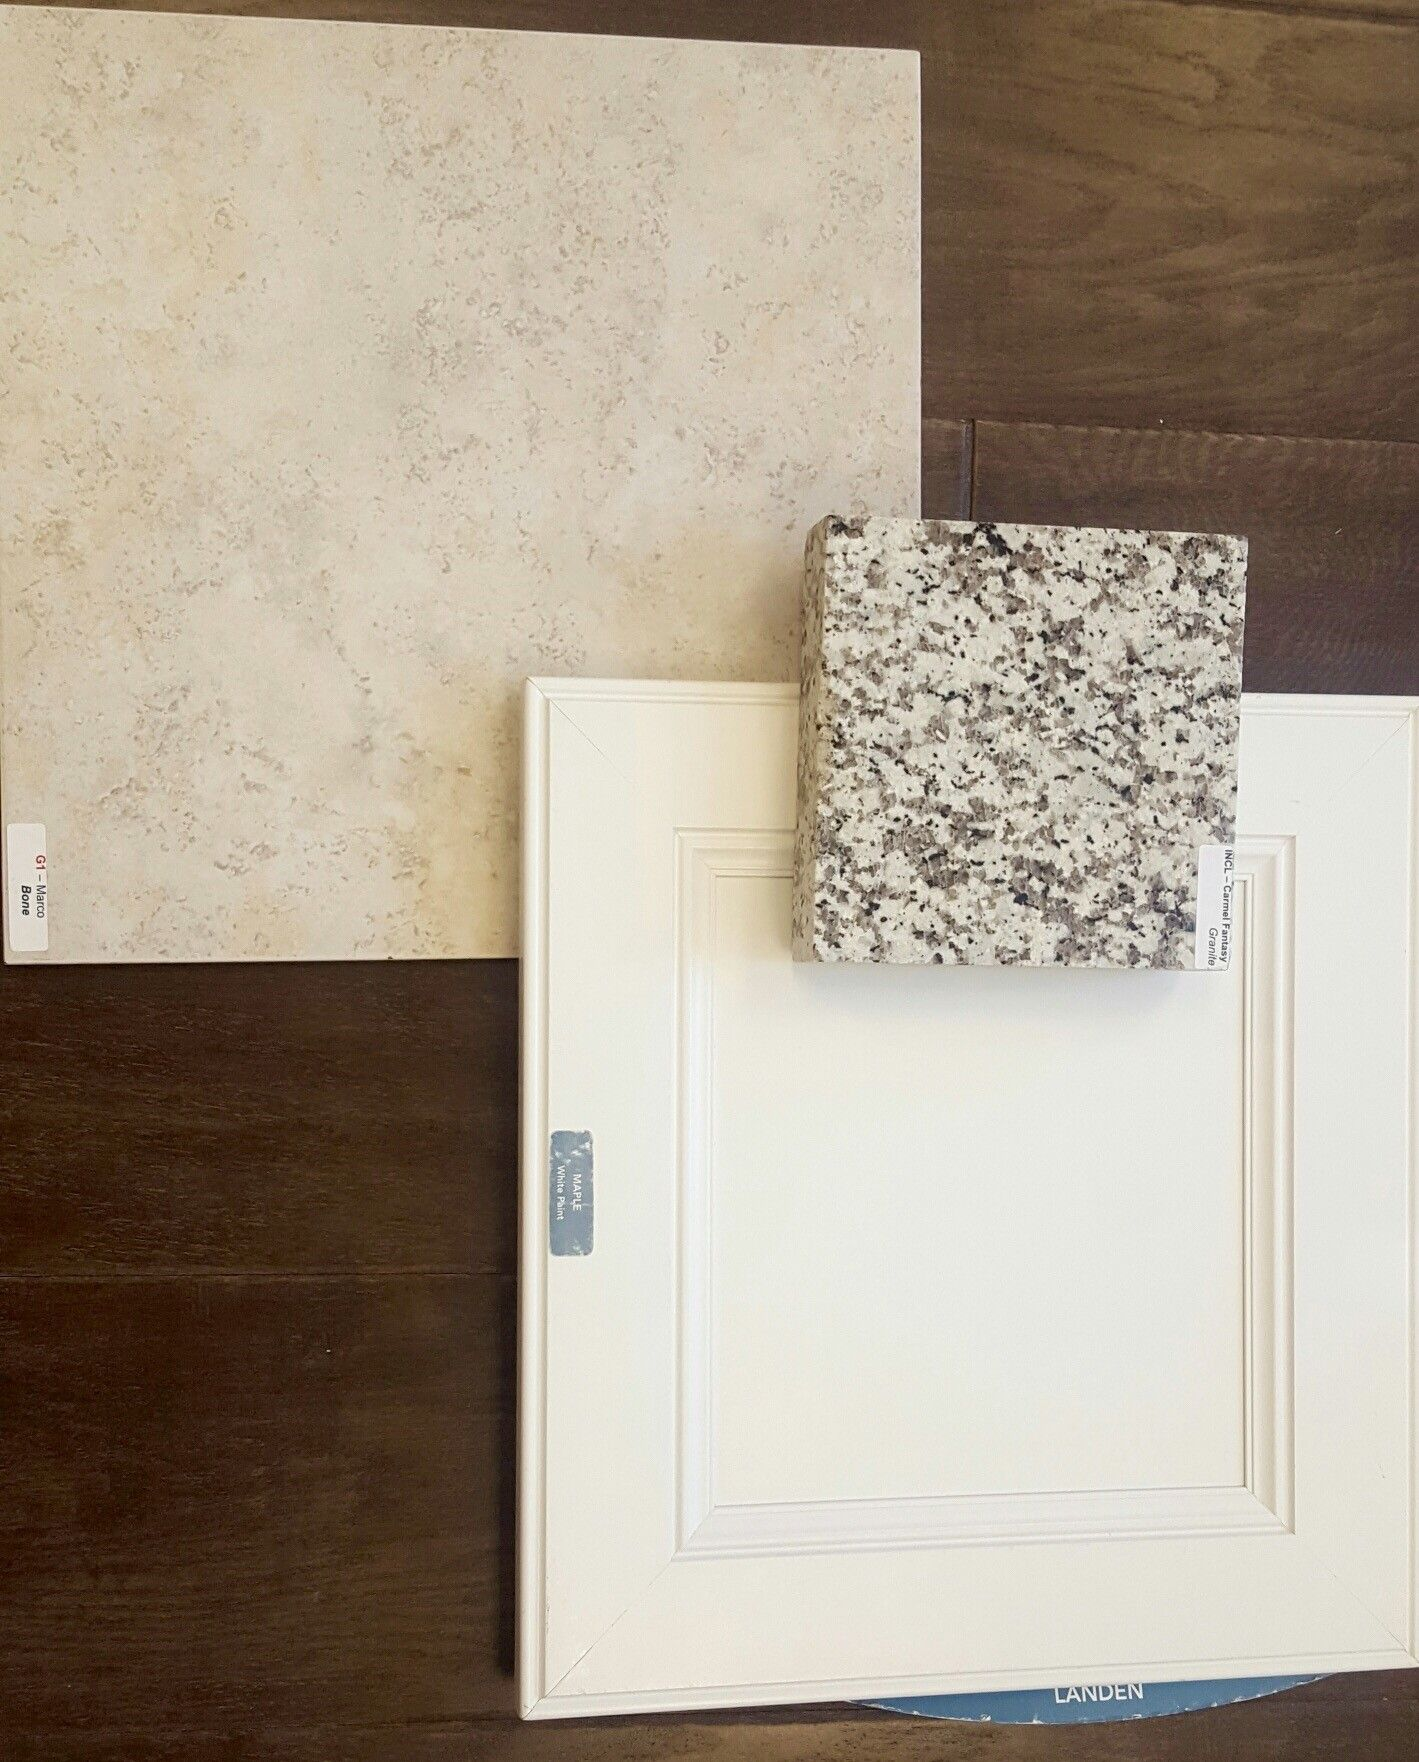 Marco Bone tile, Carmel Fantasy granite, white maple cabinet